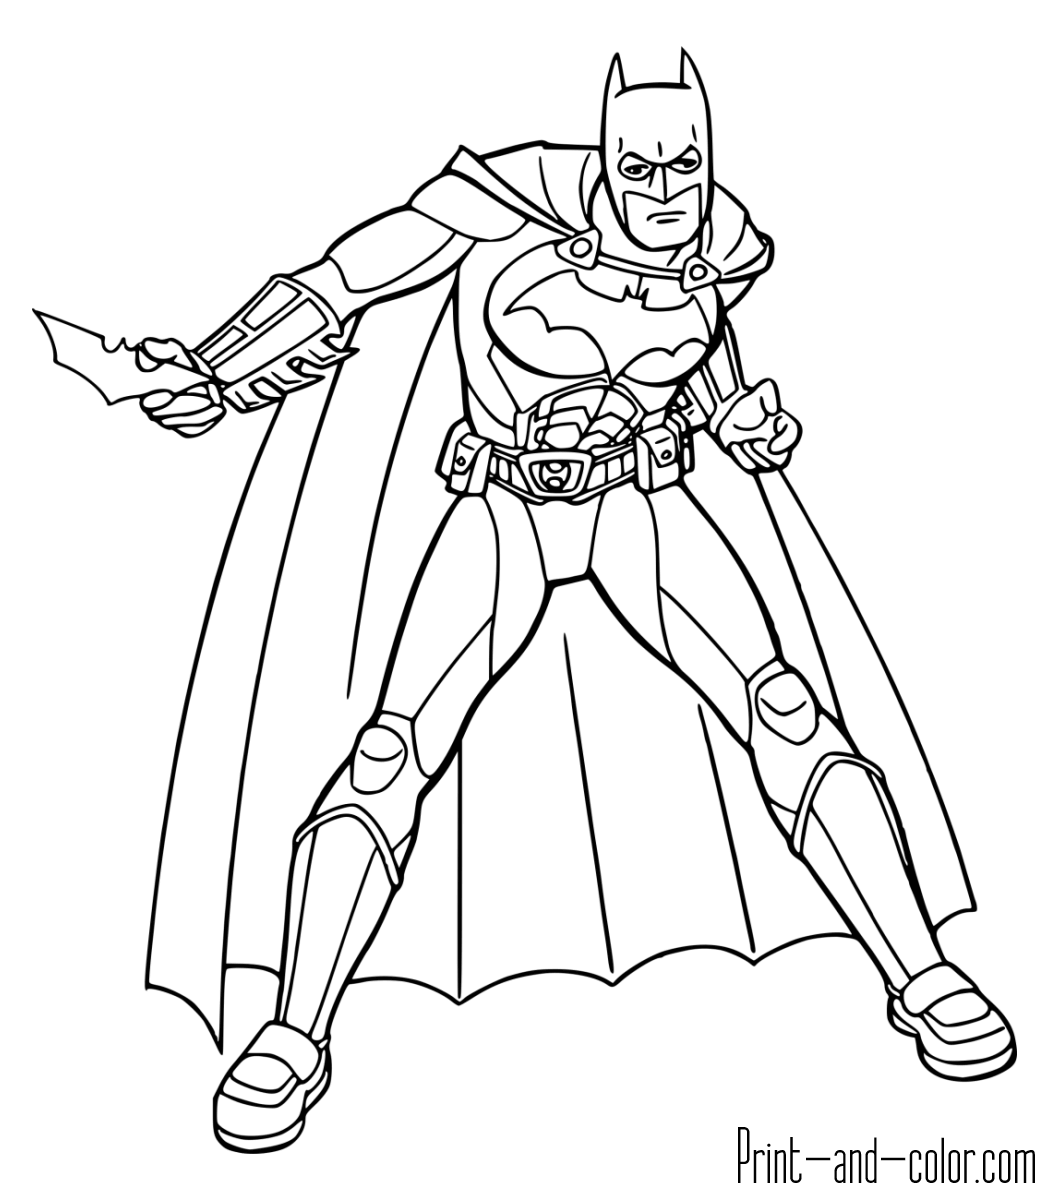 Knight Coloring Pages For Kids At Getdrawings Com Free For